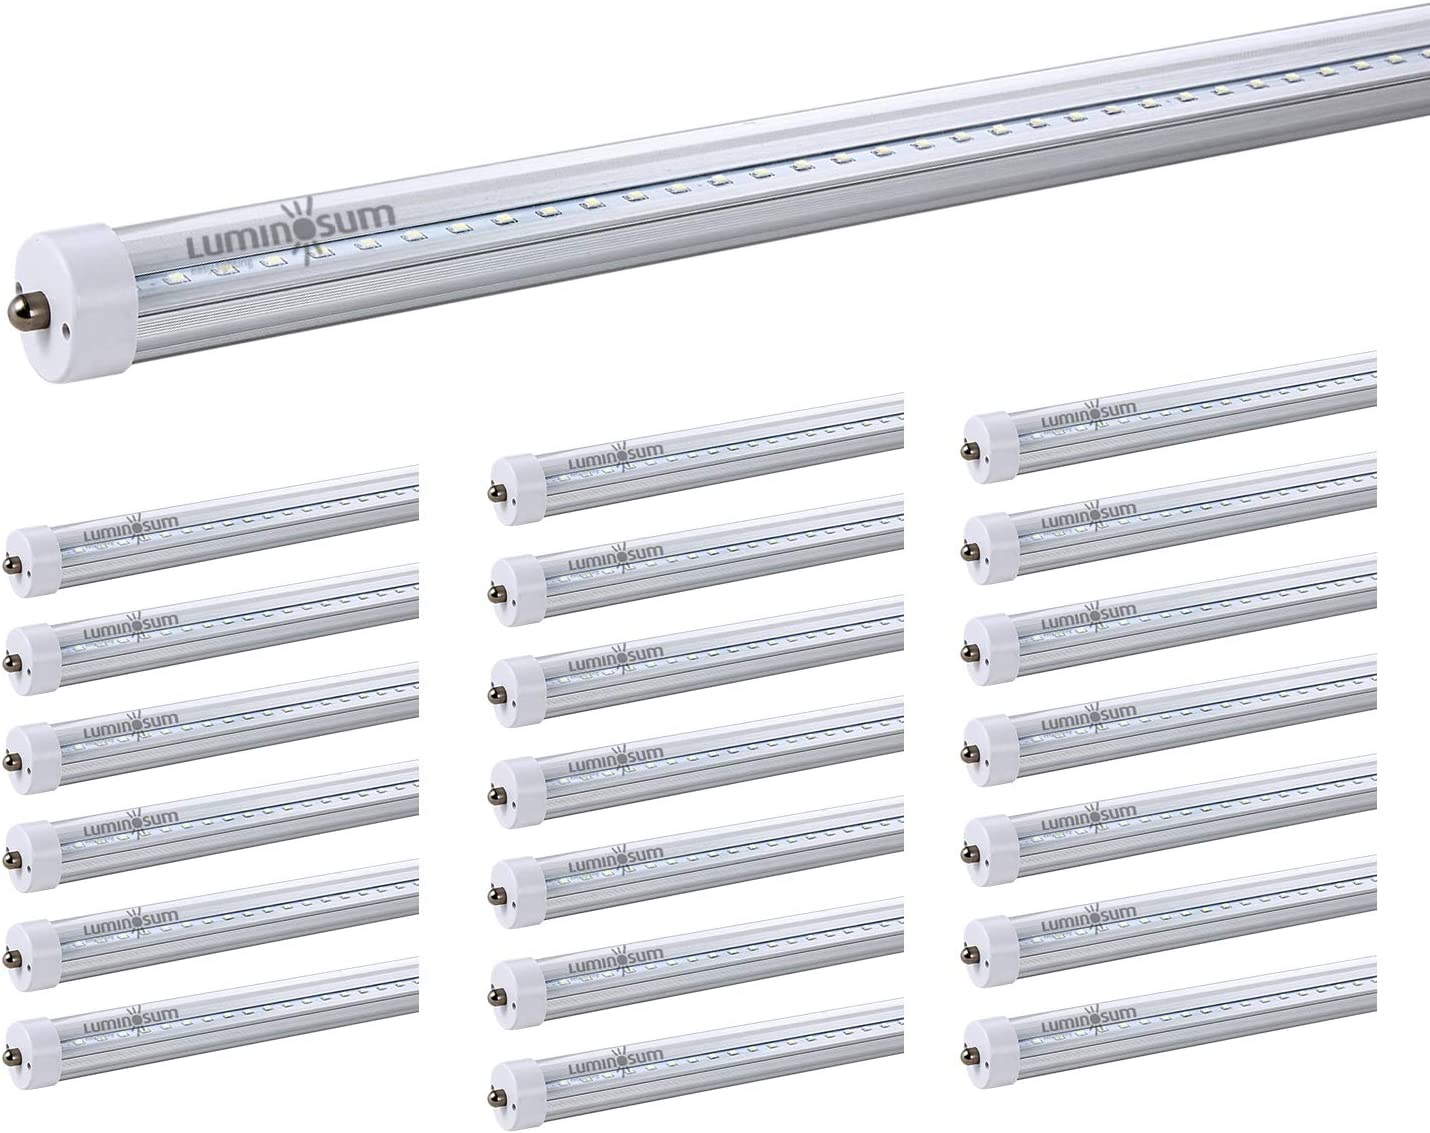 LED T8 tube light 8ft 240cm direct replacement warm//natural//cool white.